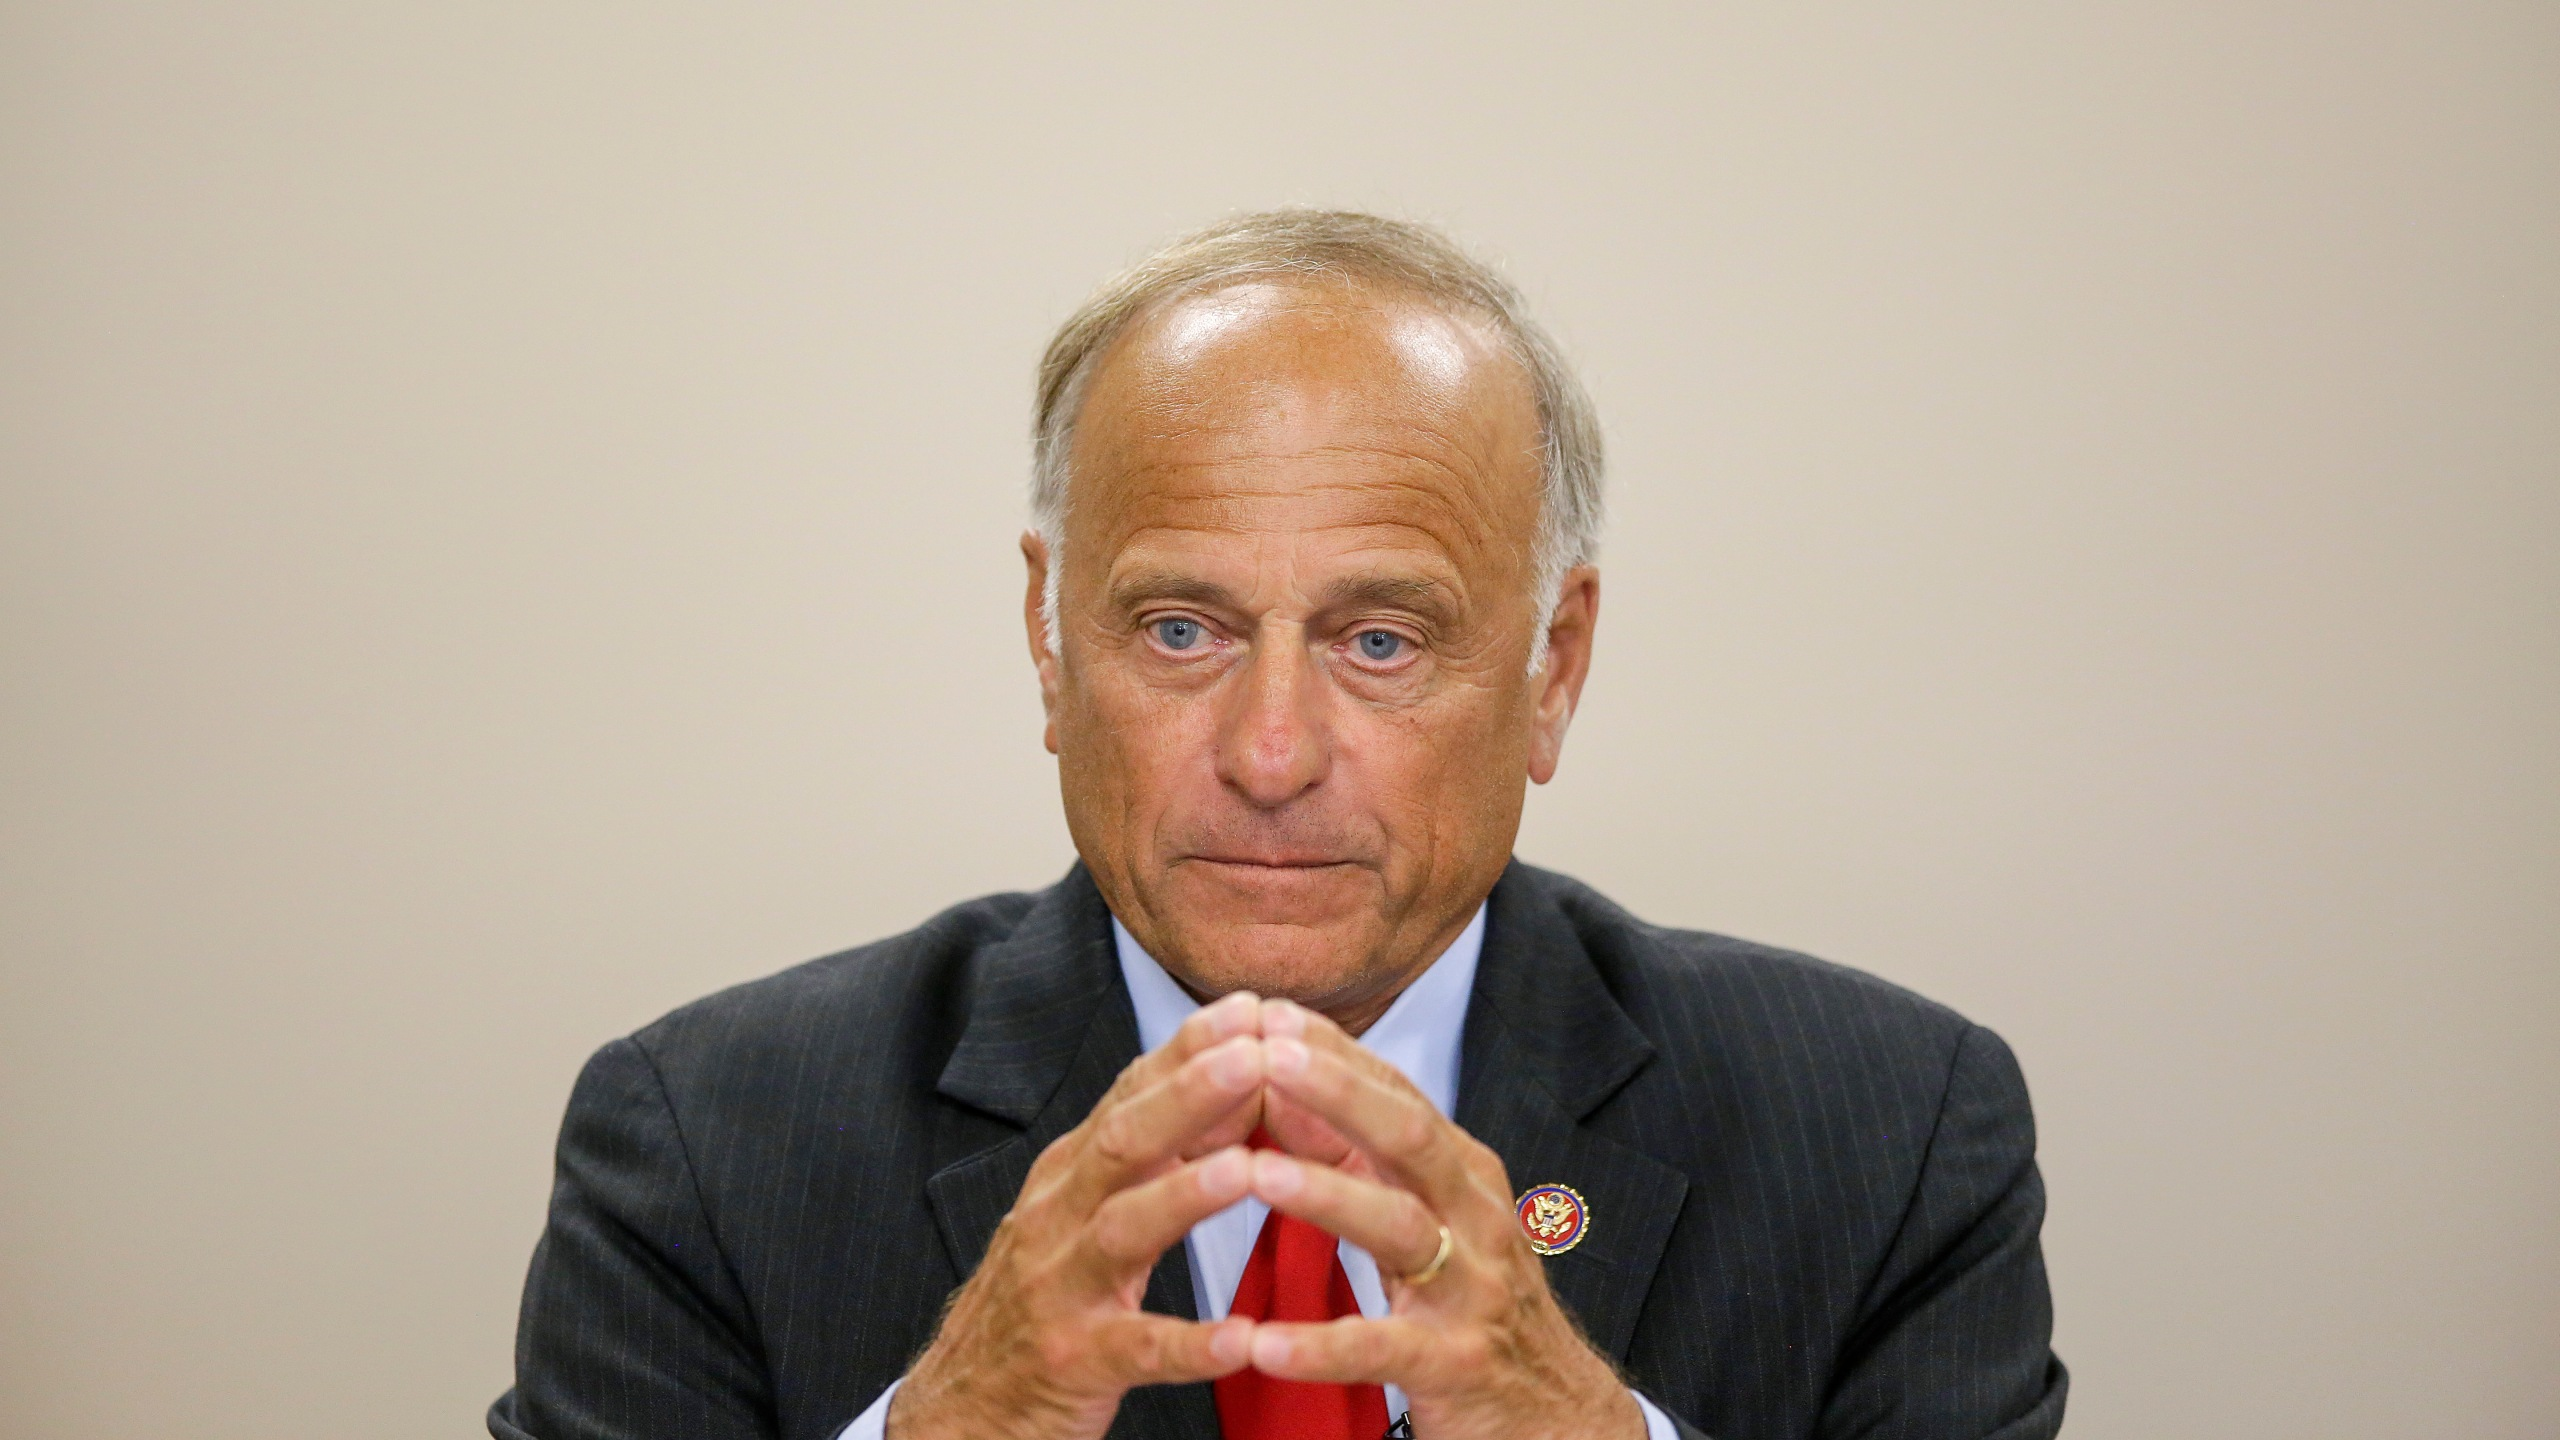 Rep. Steve King speaks during a town hall meeting at the Ericson Public Library in Boone, Iowa, on Aug. 13, 2019. (Joshua Lott / Getty Images)